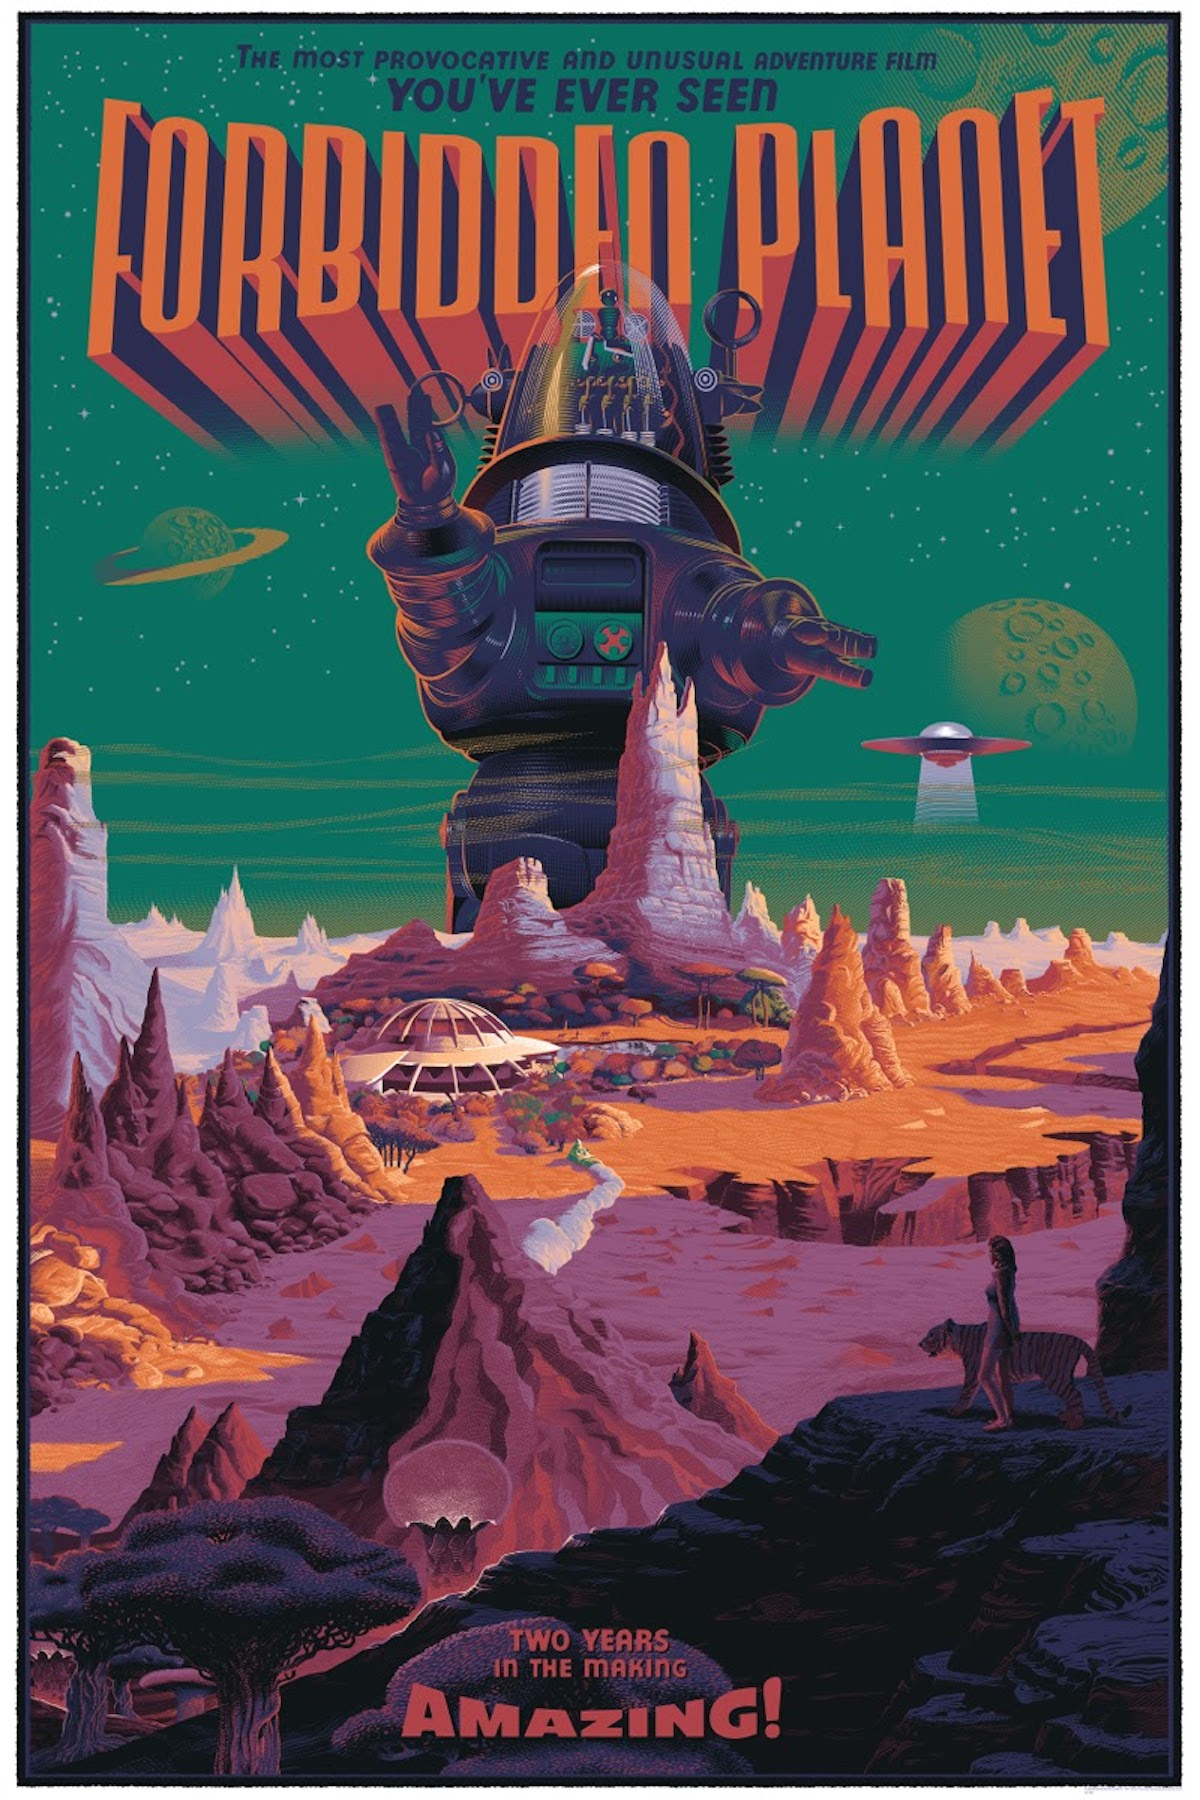 Forbidden Planet Retro-Futuristic World of Laurent Durieux